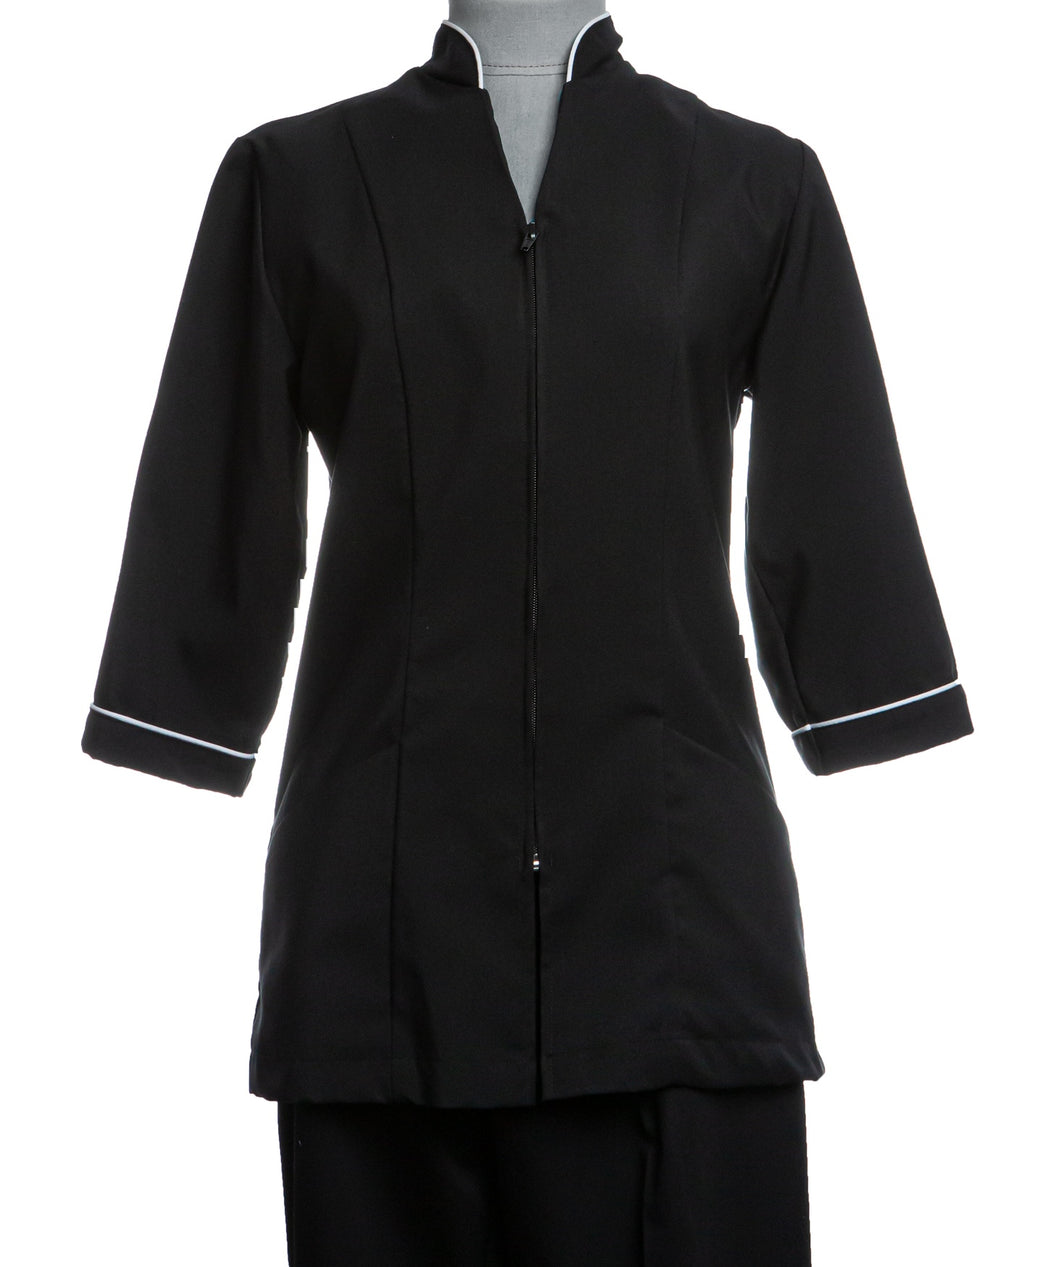 M948T – Spa Jacket 3/4 sleeve with trim